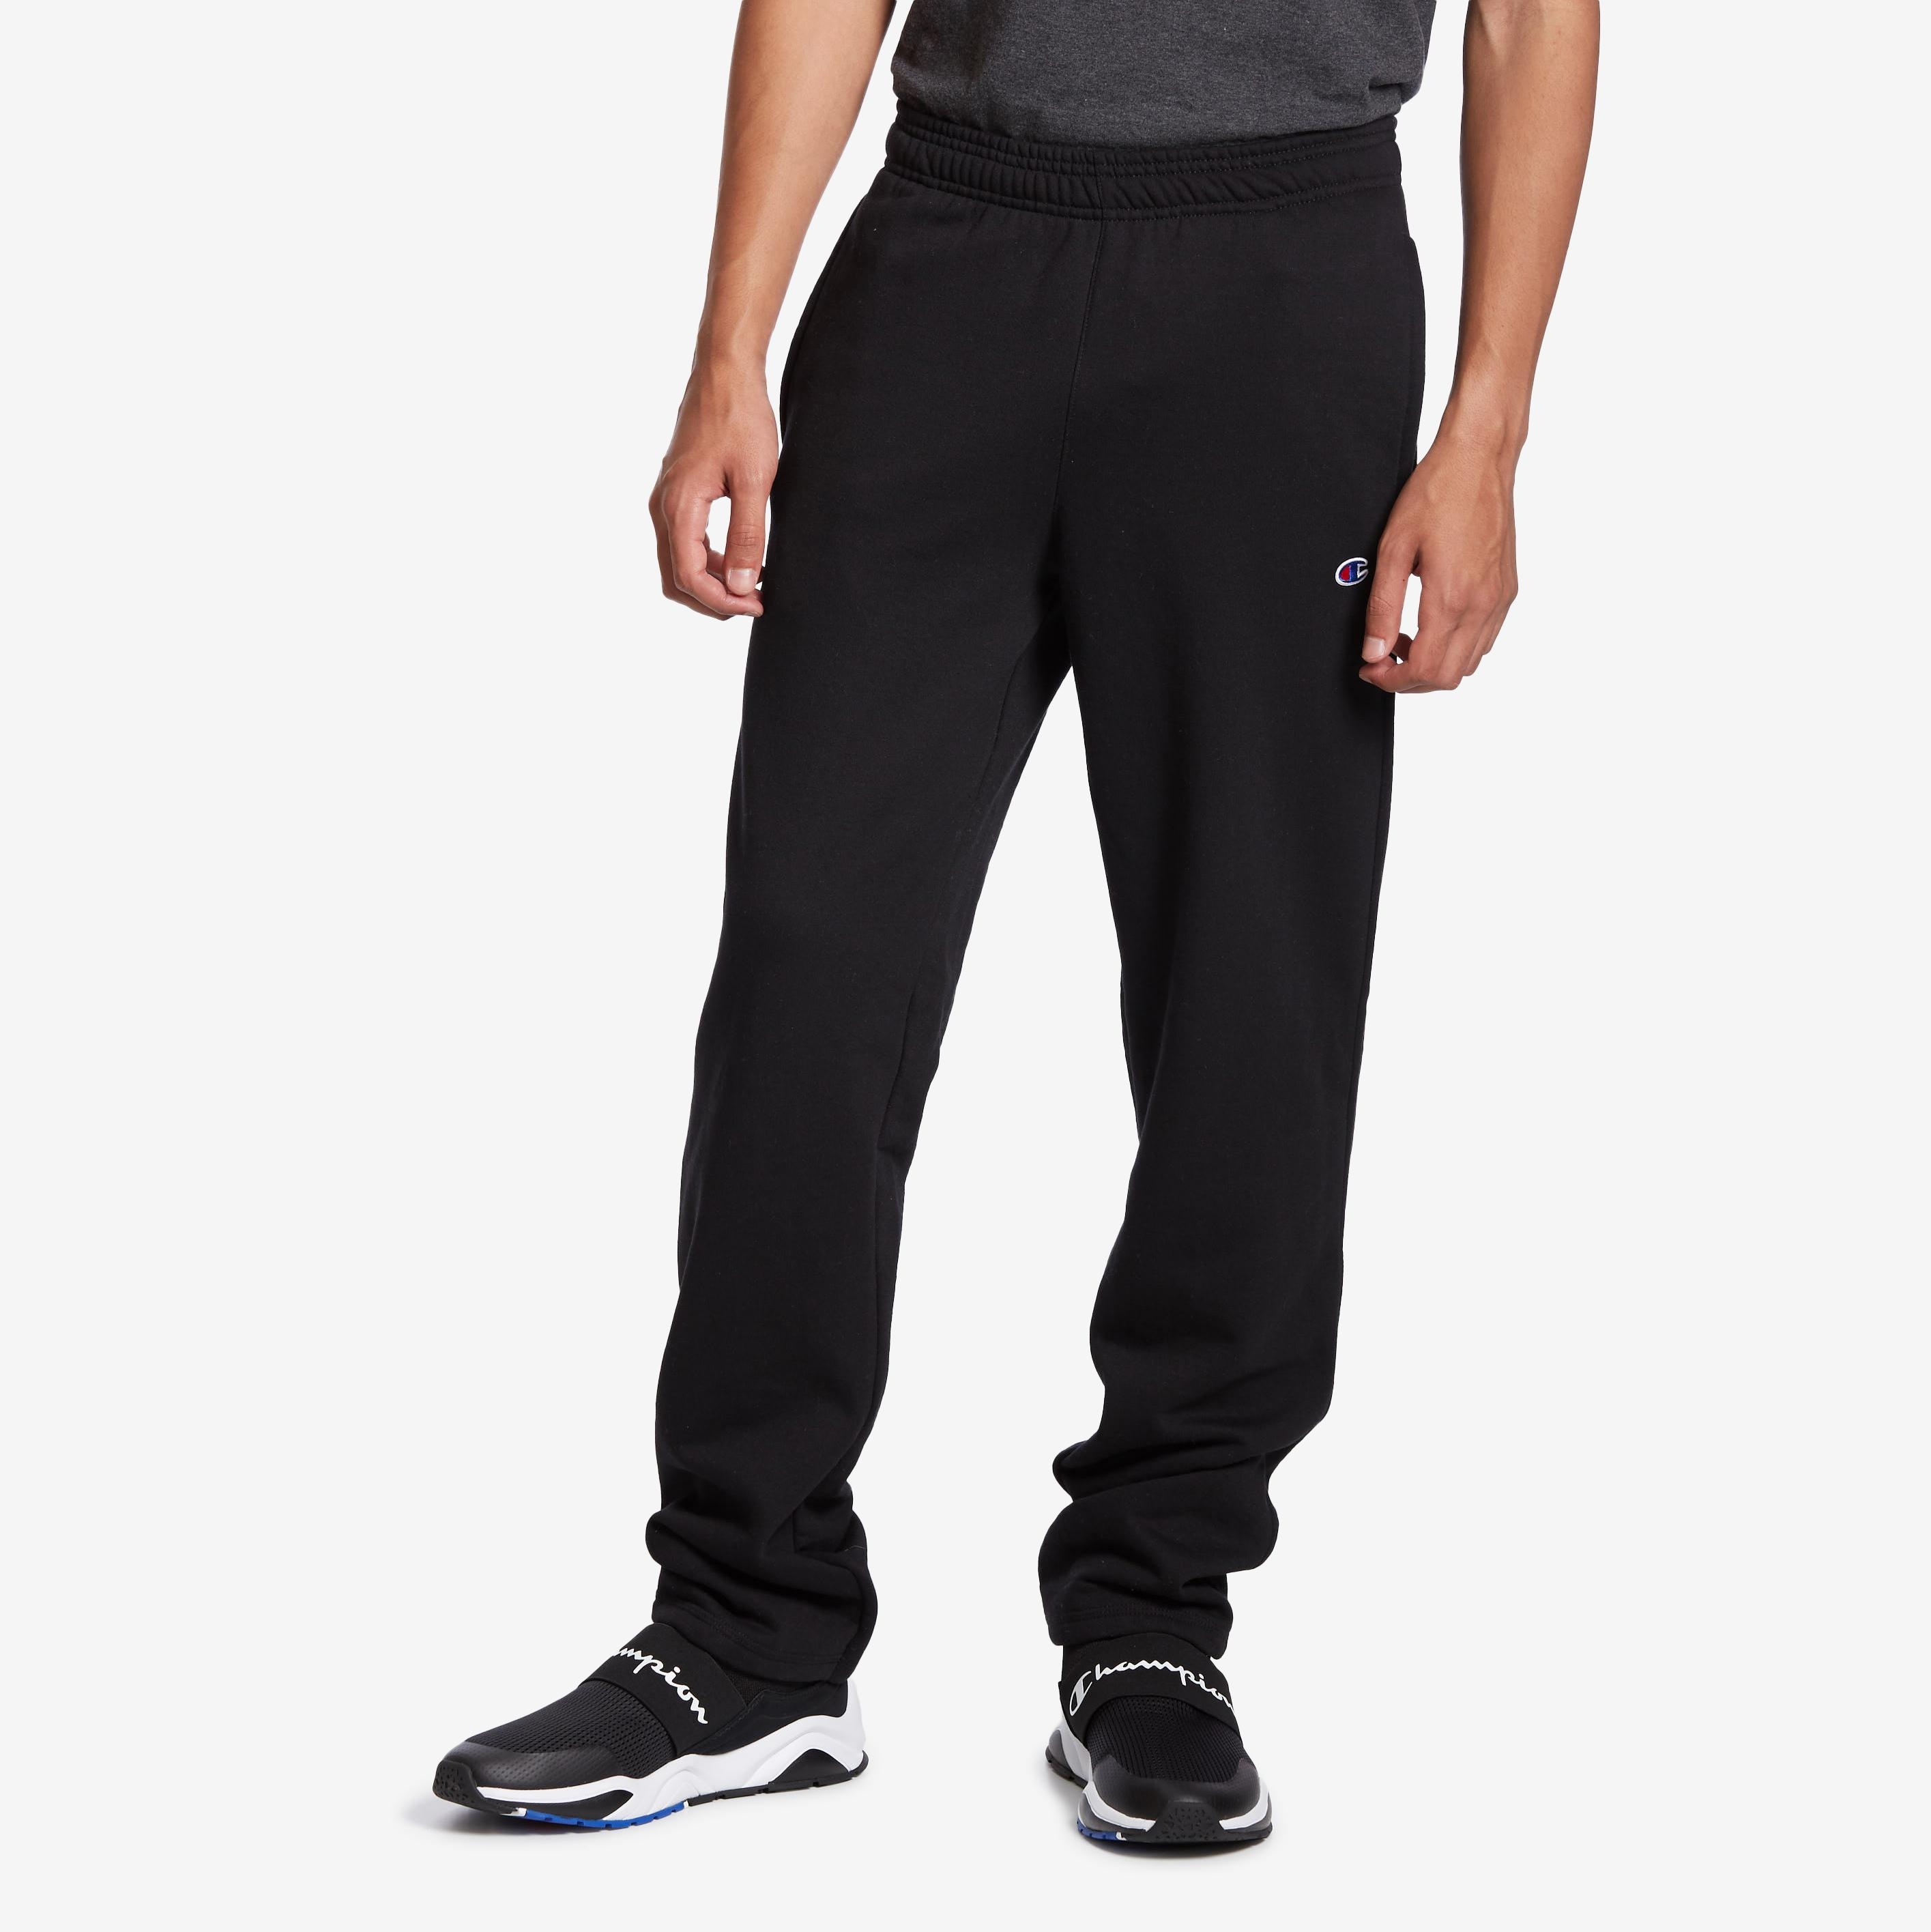 Powerblend Sweats Open Bottom Pants